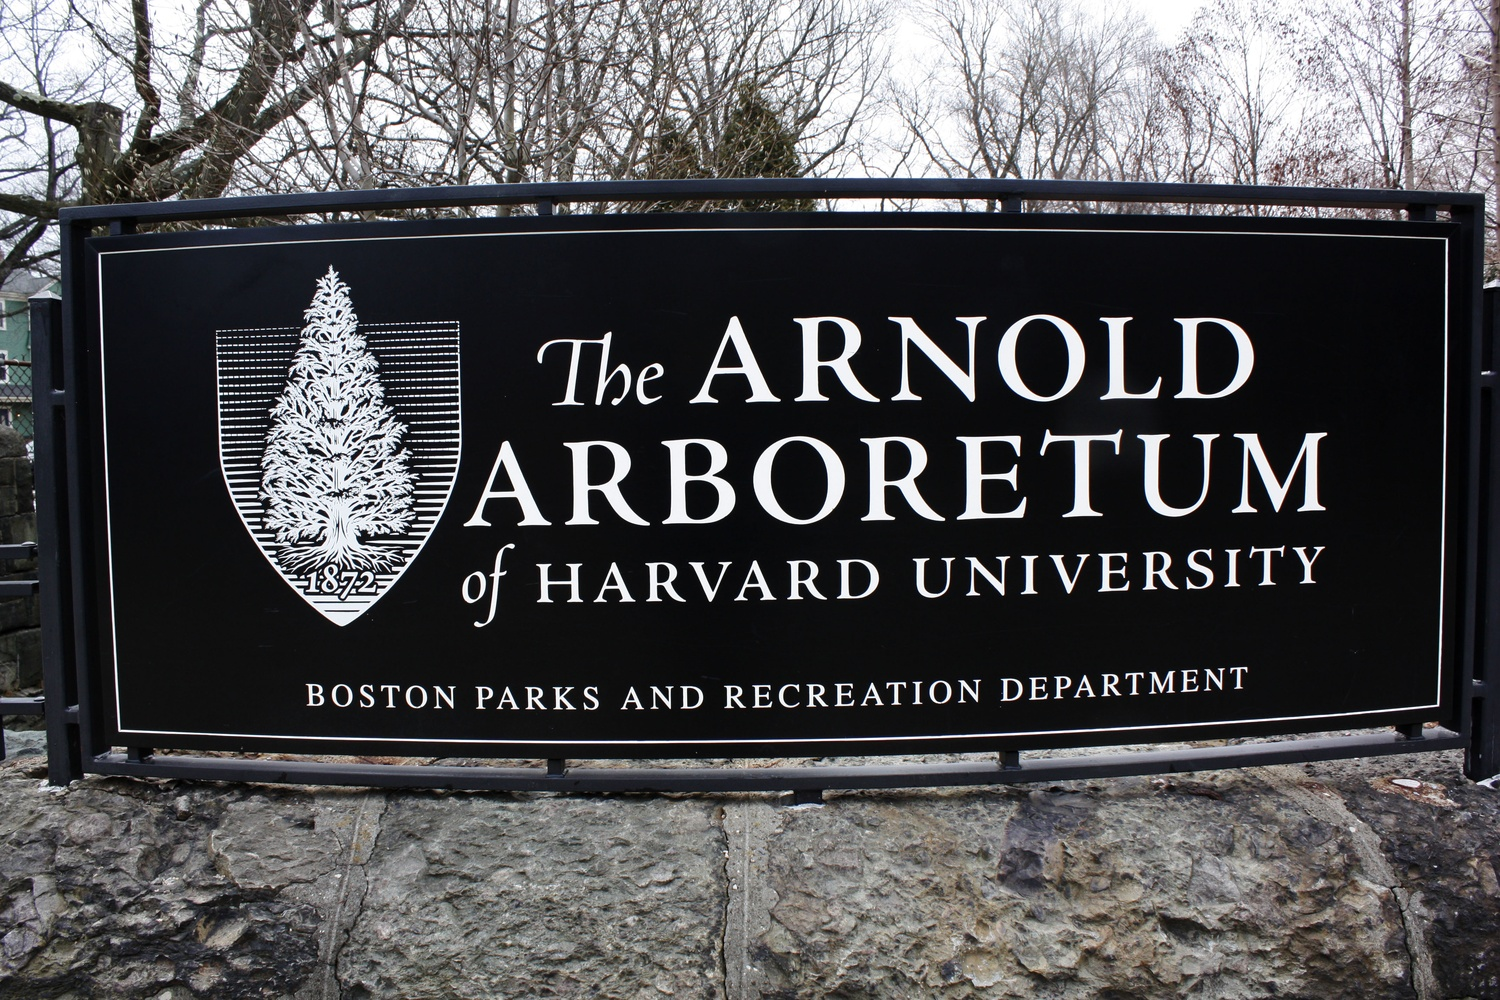 Welcome to the Arboretum